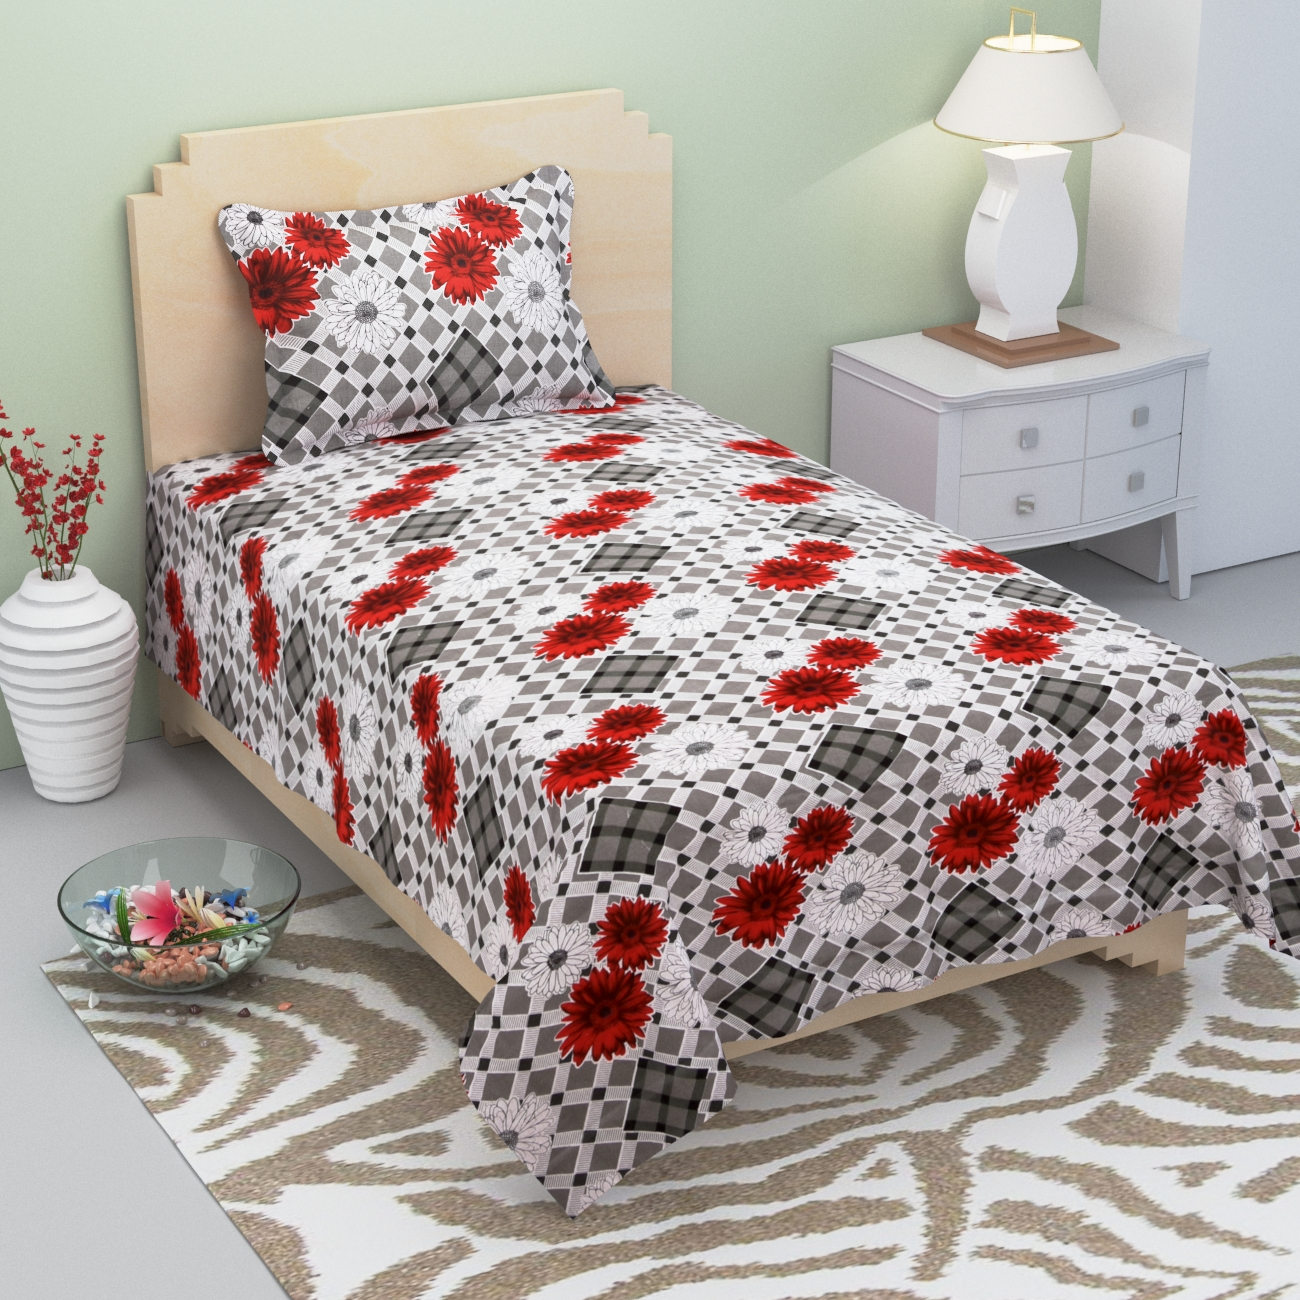 Homefab India 140 TC Cotton Single Bedsheet with 1 Pillow Cover - Floral Print (Single271)